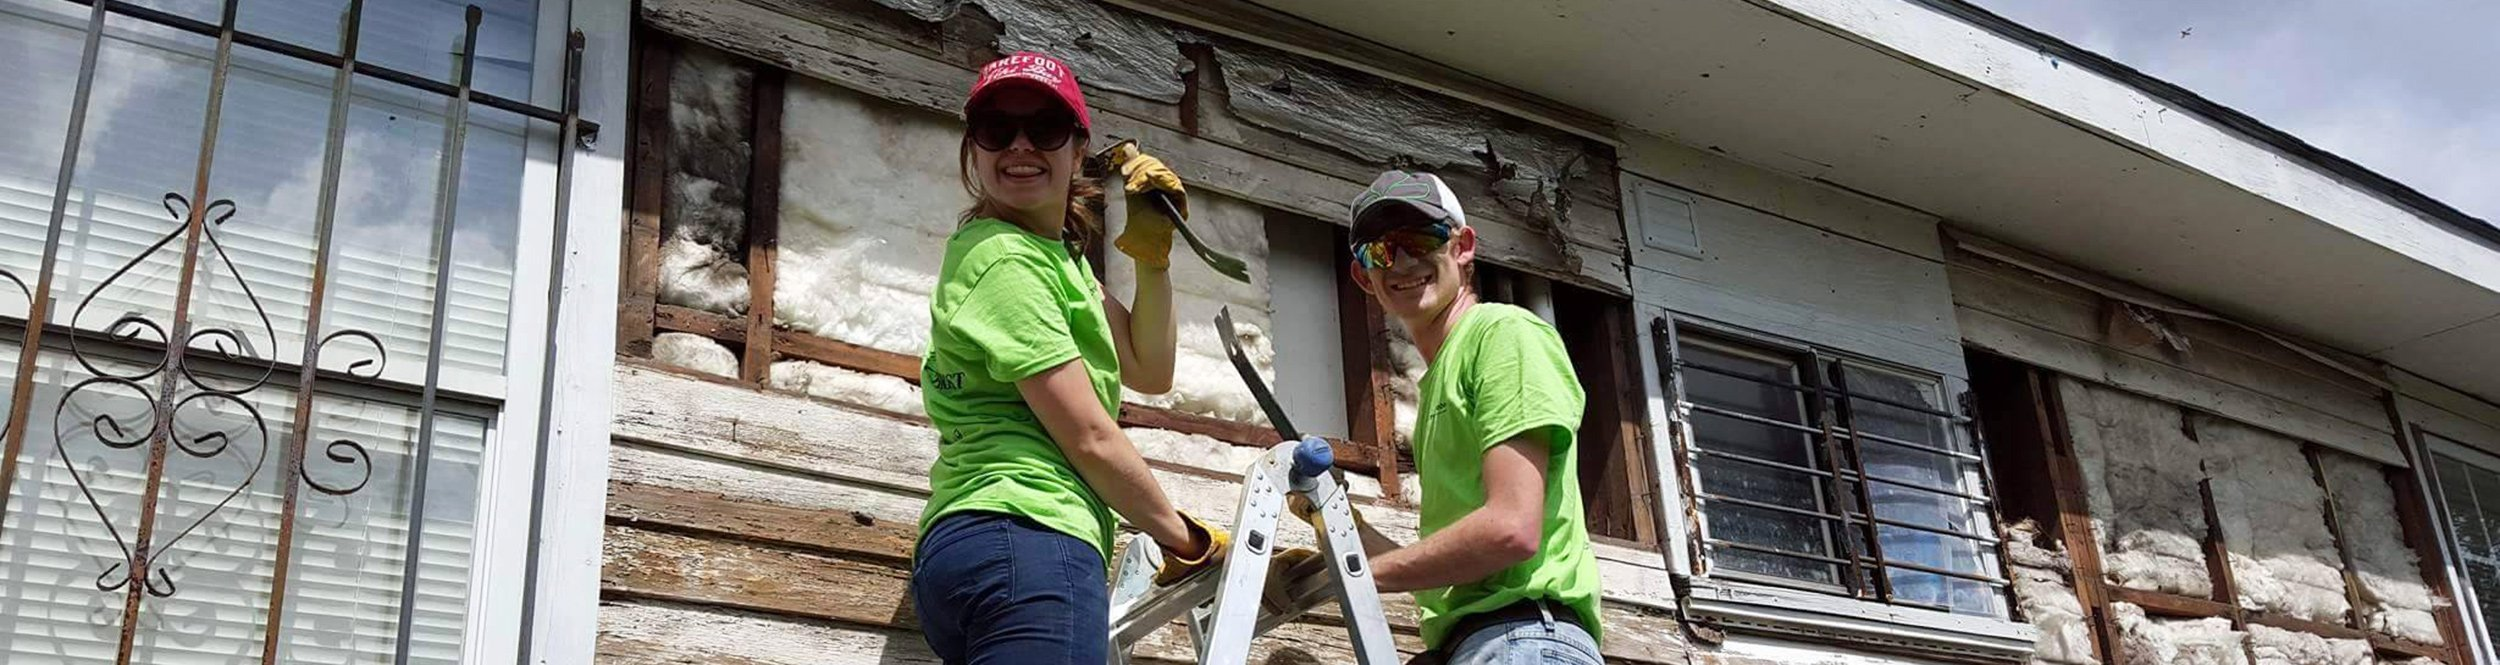 Two students, standing on a ladder, work on the dilapidated side of a house.